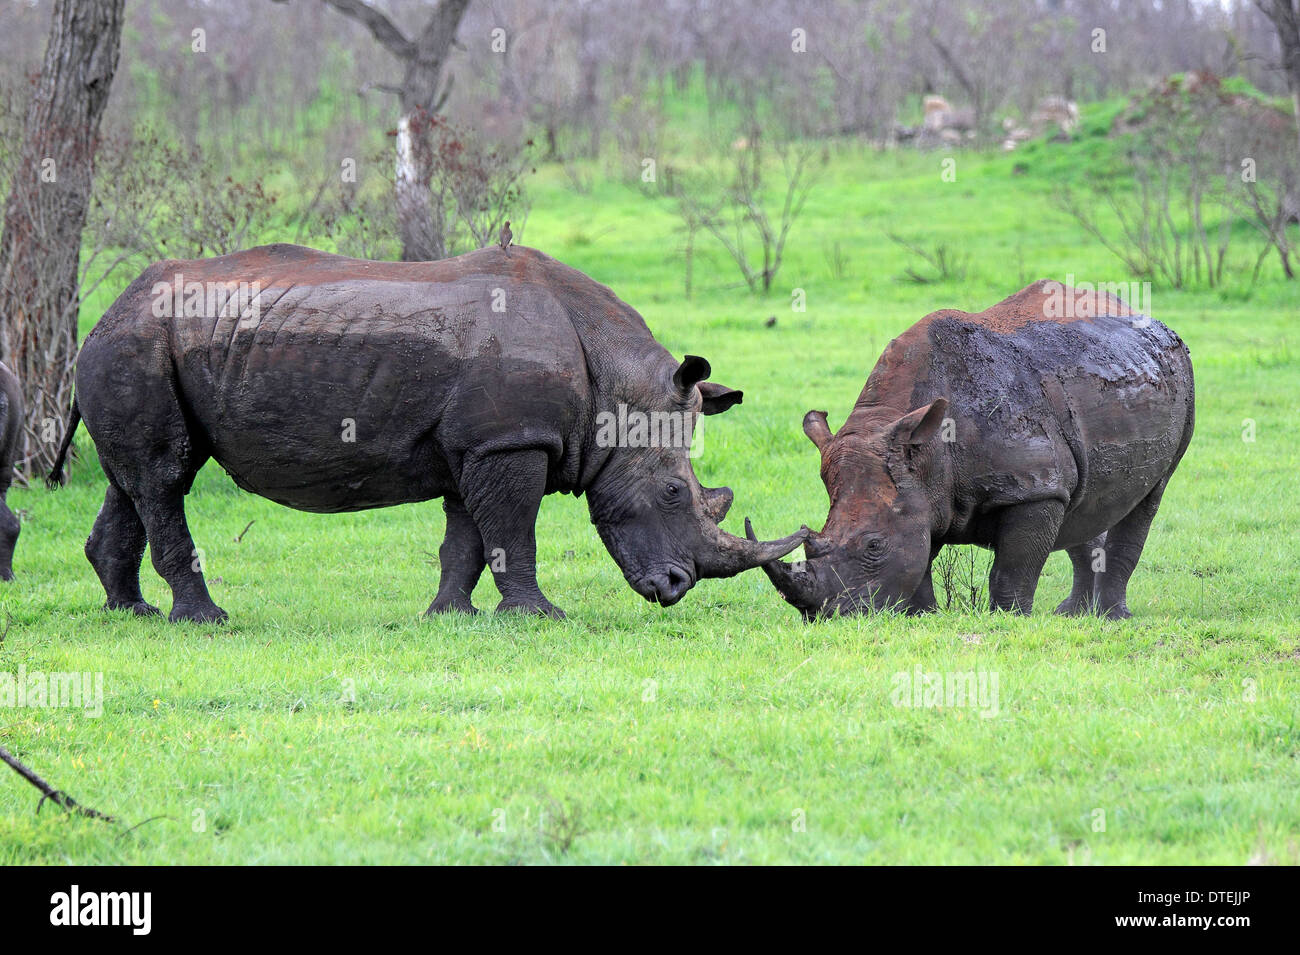 Wide-mouthed Rhinoceros, males, Sabi Sabi Game Reserve, Kruger national park, South Africa / (Ceratotherium simum) - Stock Image